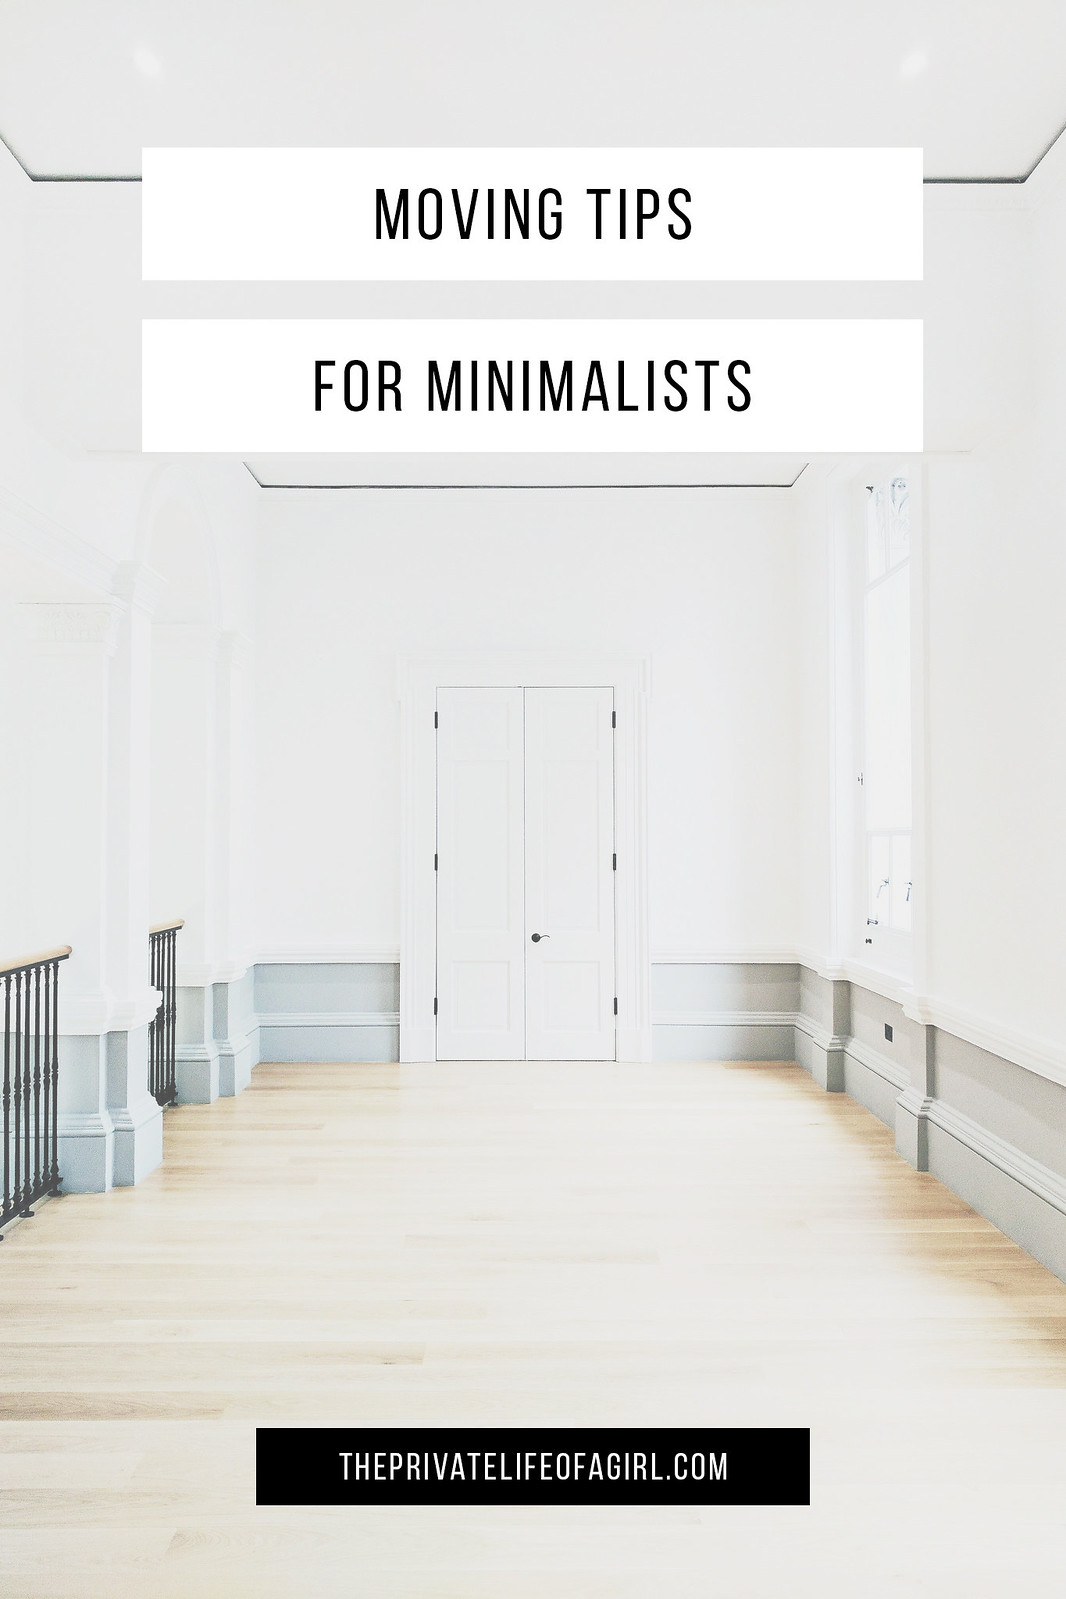 Minimalist Moving Tips